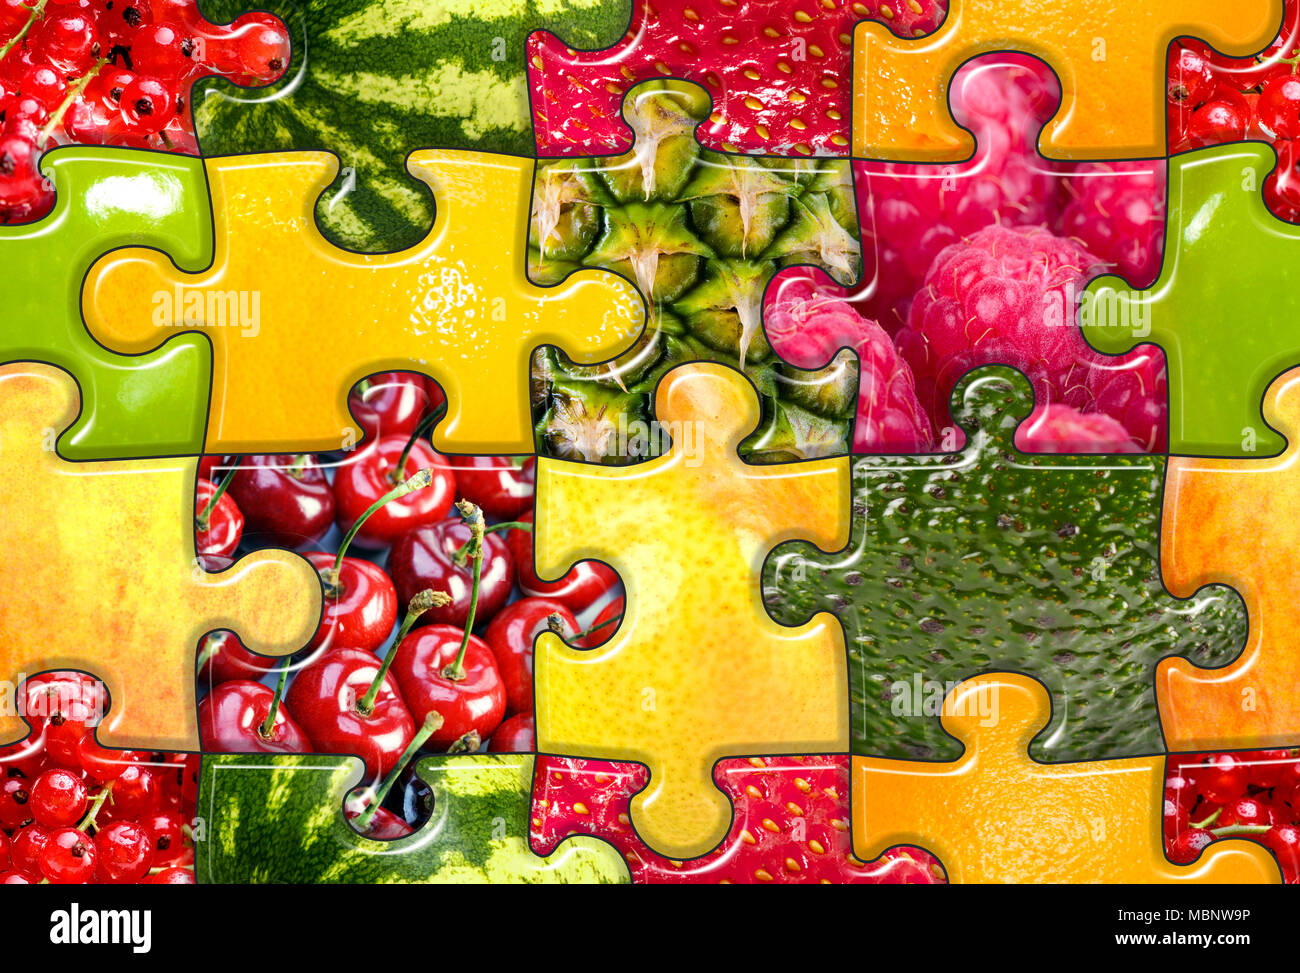 Fruits Collage Imágenes De Stock & Fruits Collage Fotos De Stock - Alamy